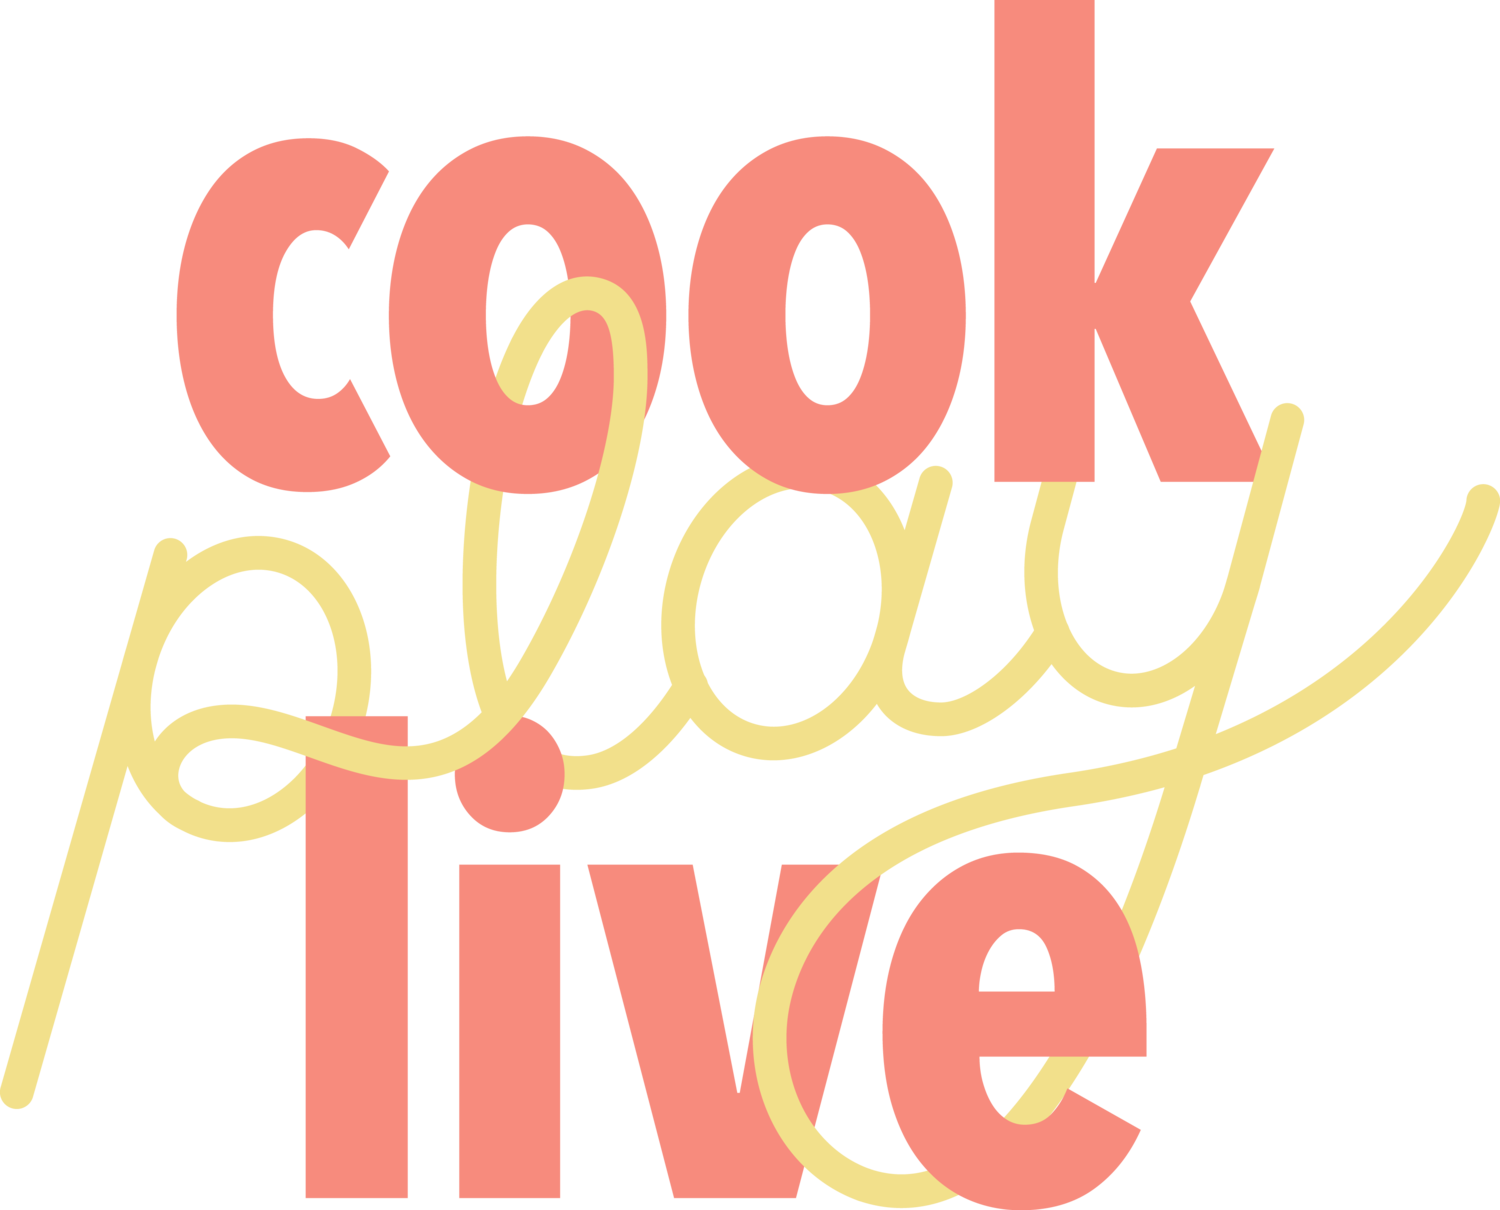 Cook Play Live